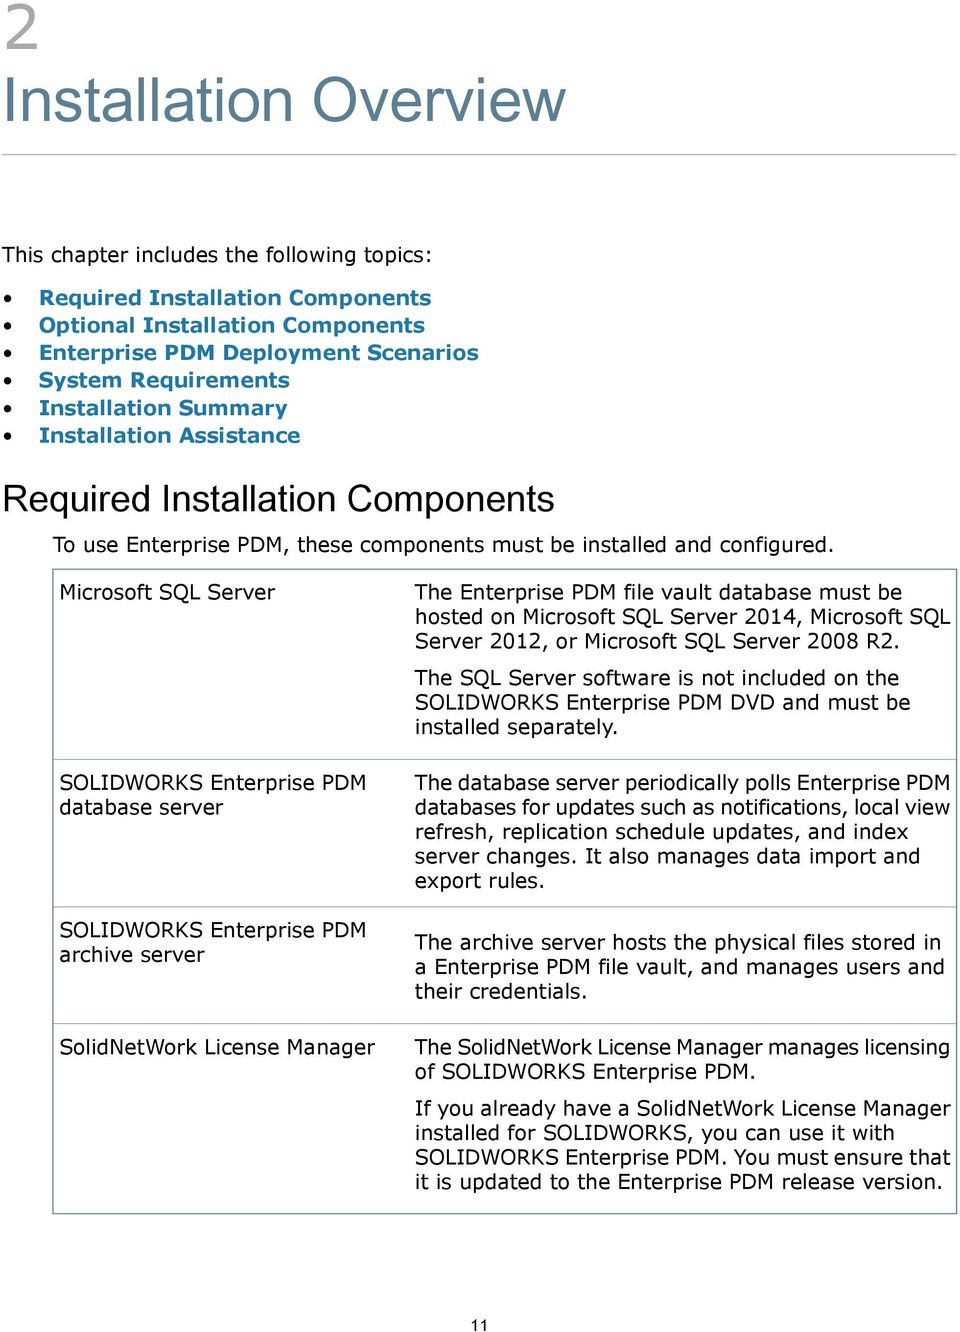 Installation Guide Solidworks Enterprise Pdm Pdf